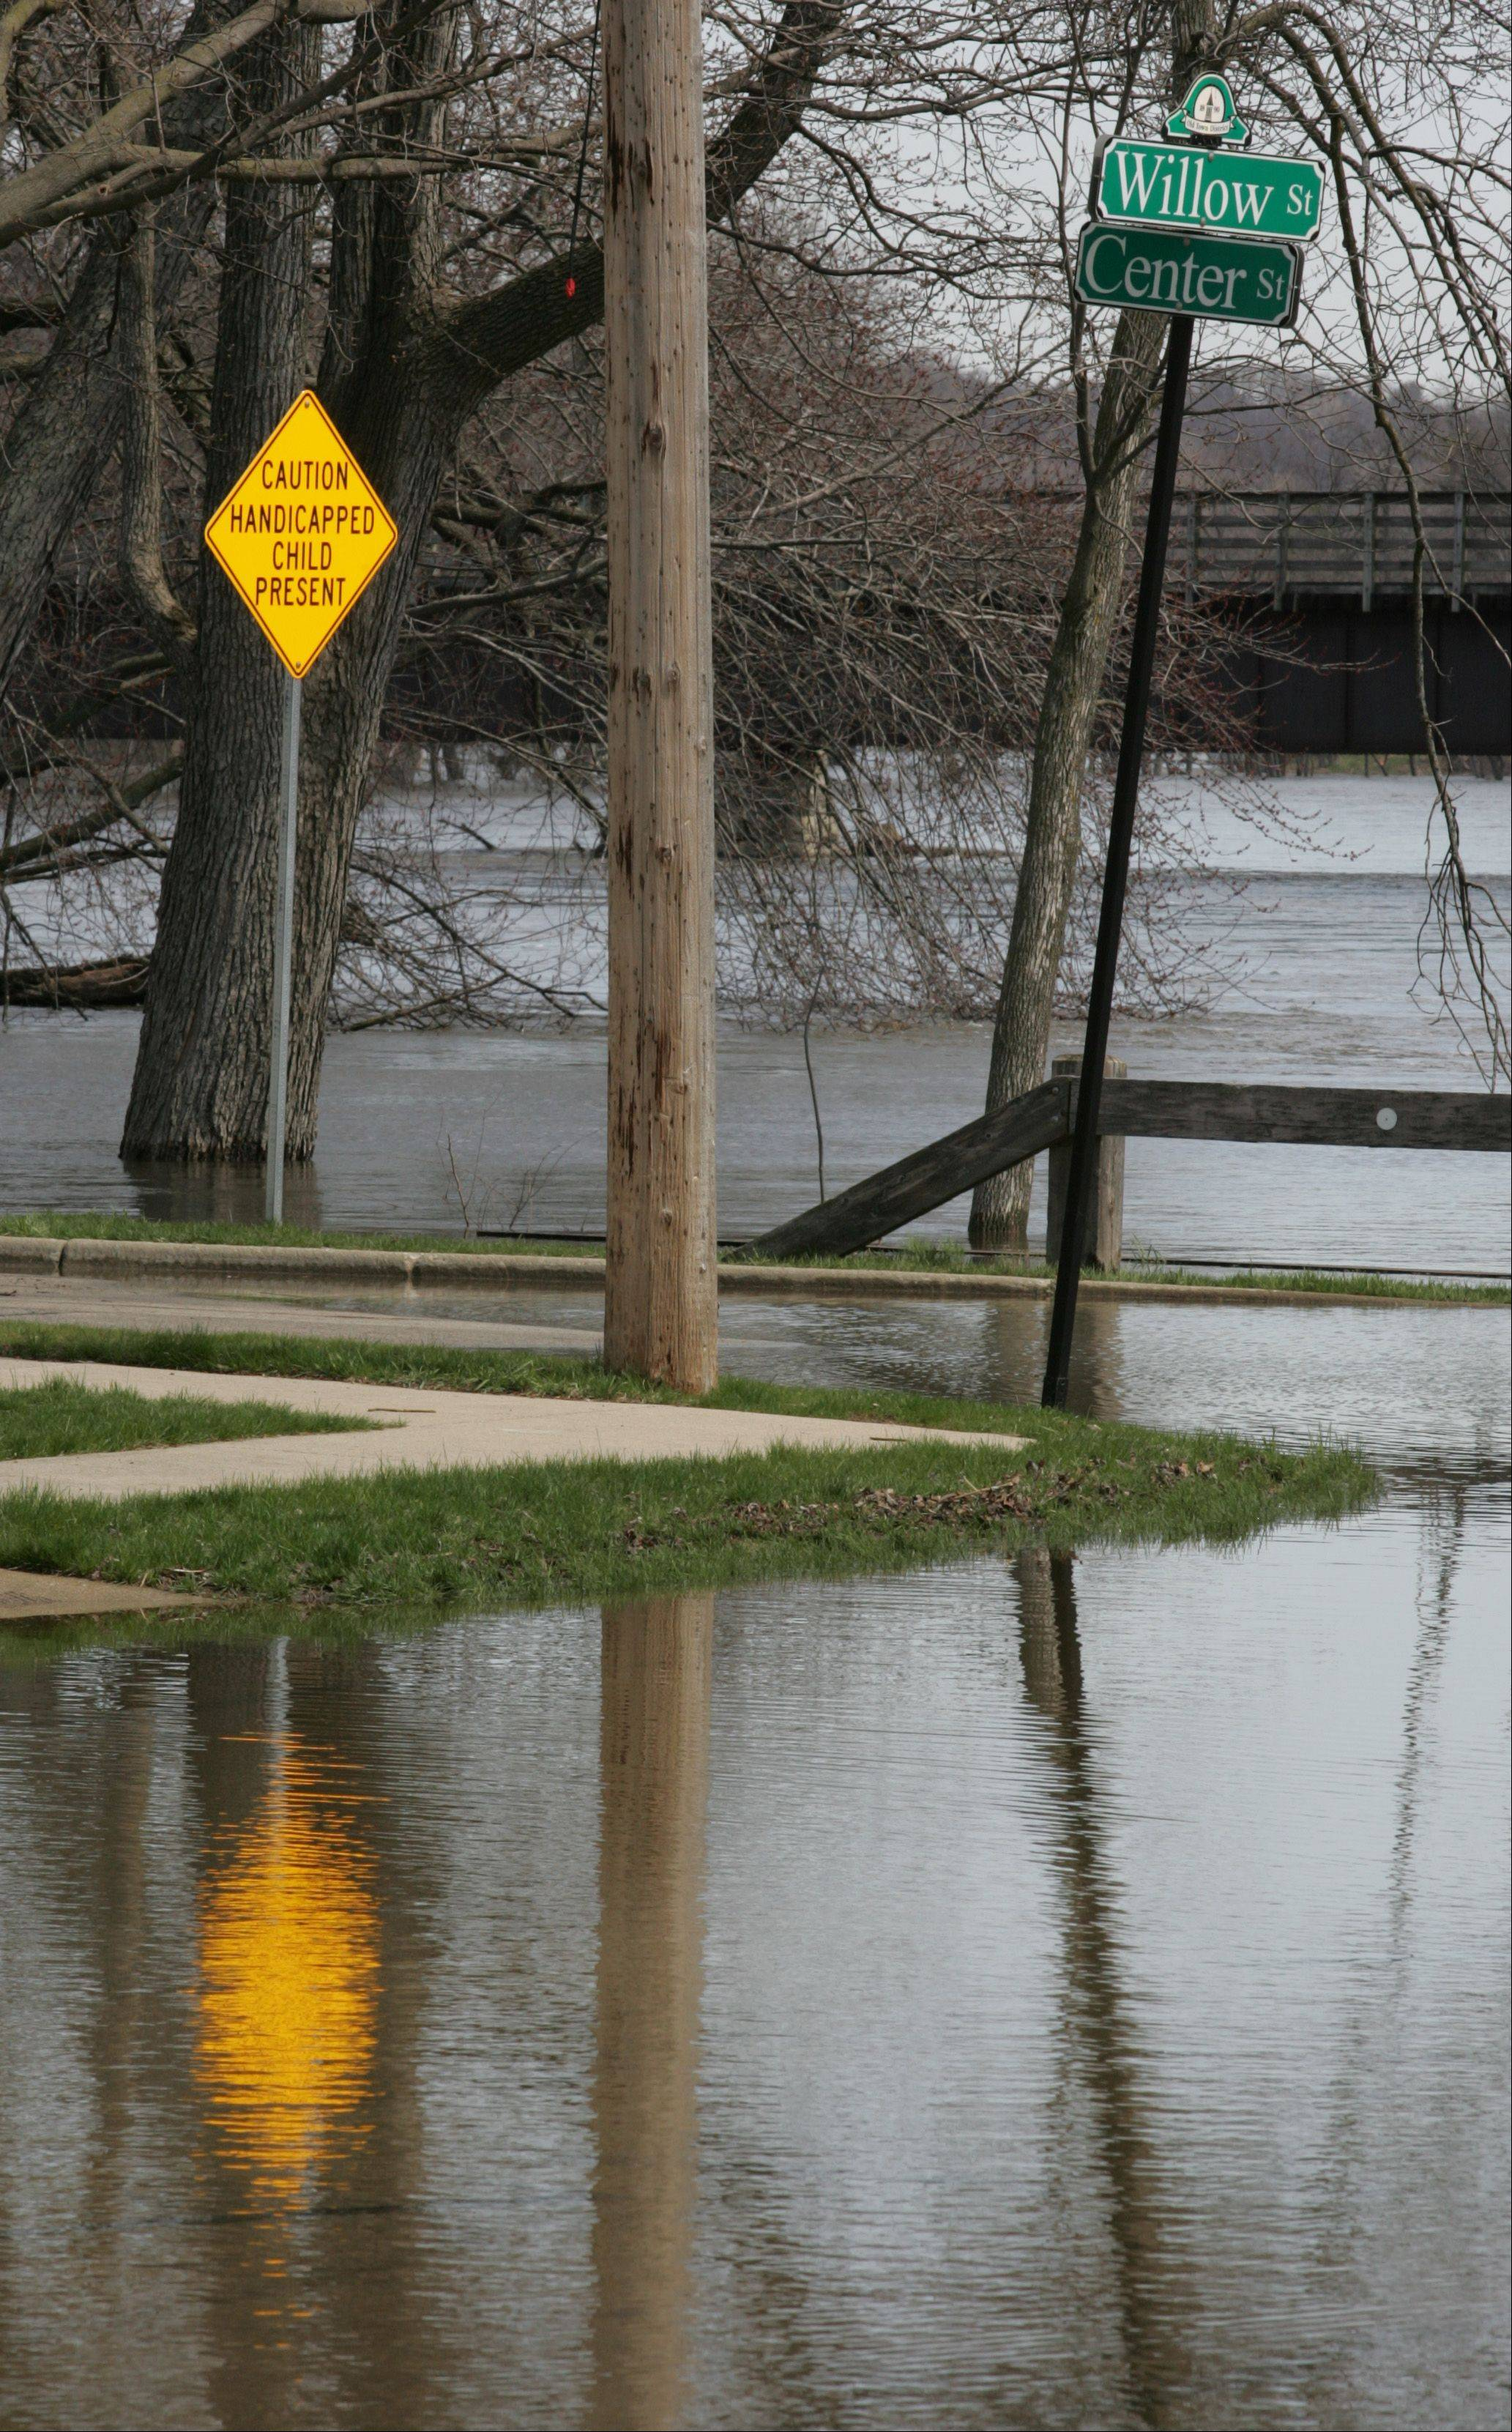 The corner of Willow and Center Streets in Algonquin has become part of the Fox River as floodwaters breech the banks of the river.